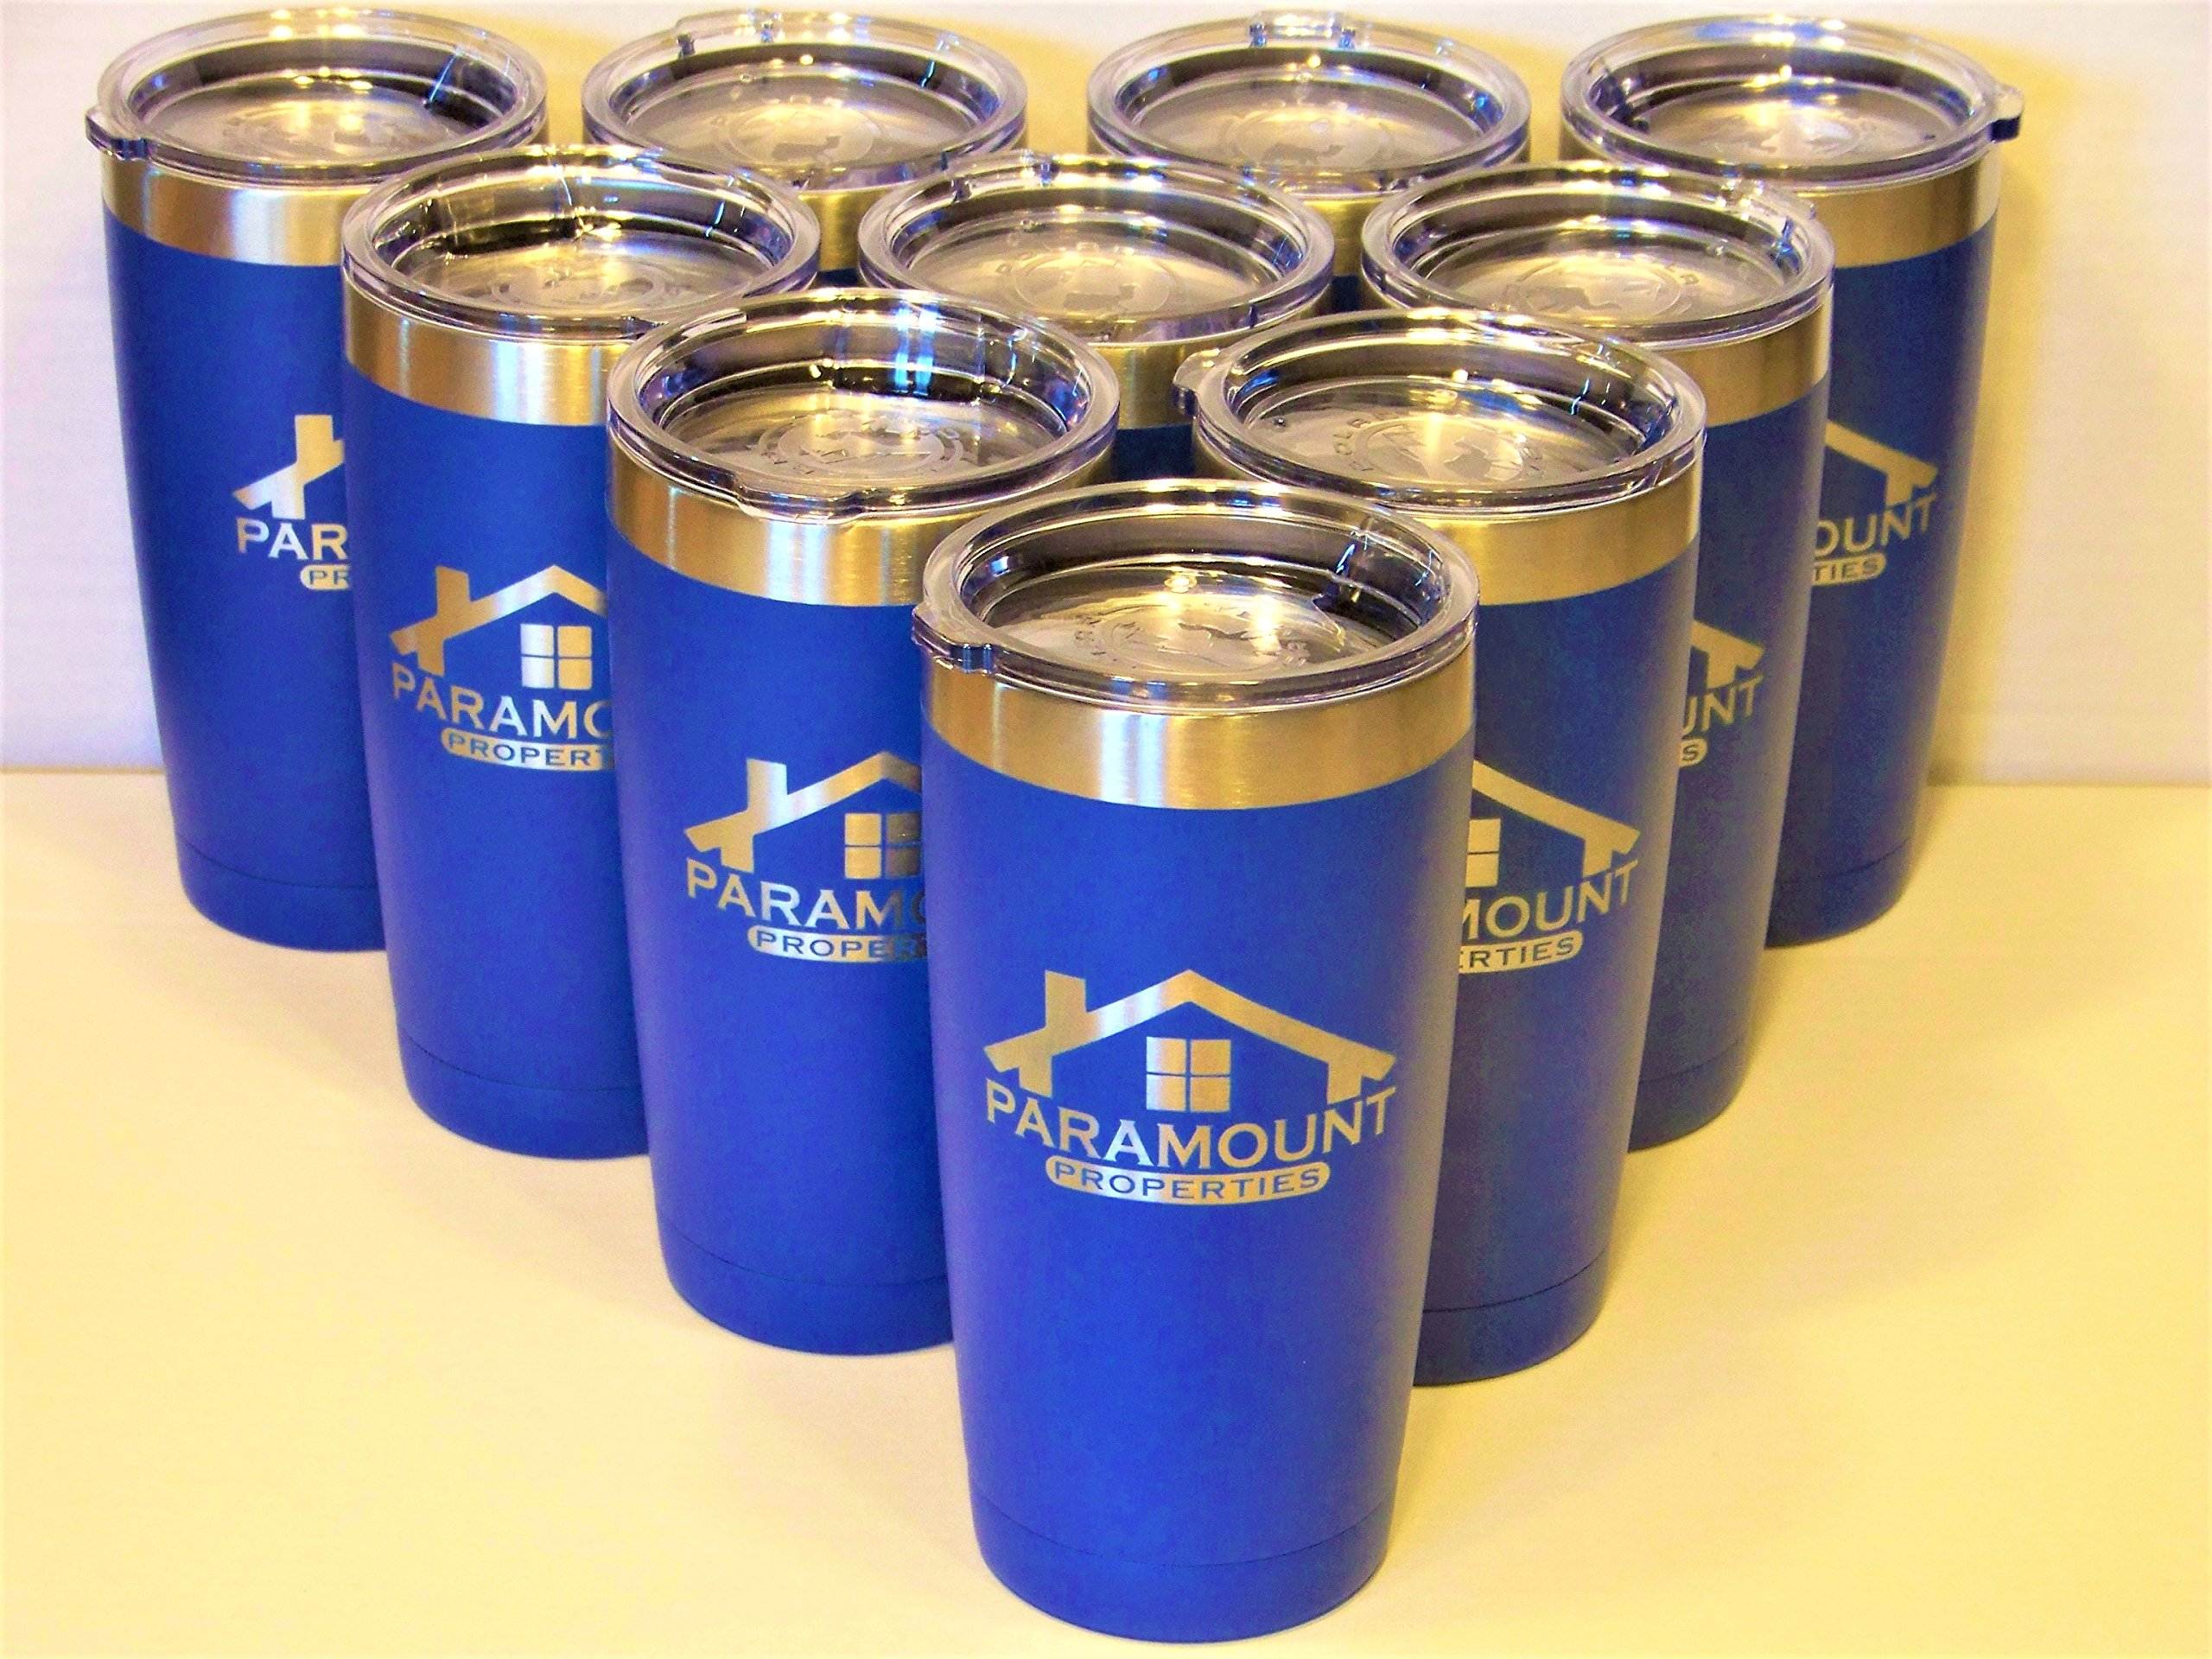 20 oz insulated stainless steel tumblers - set of 10